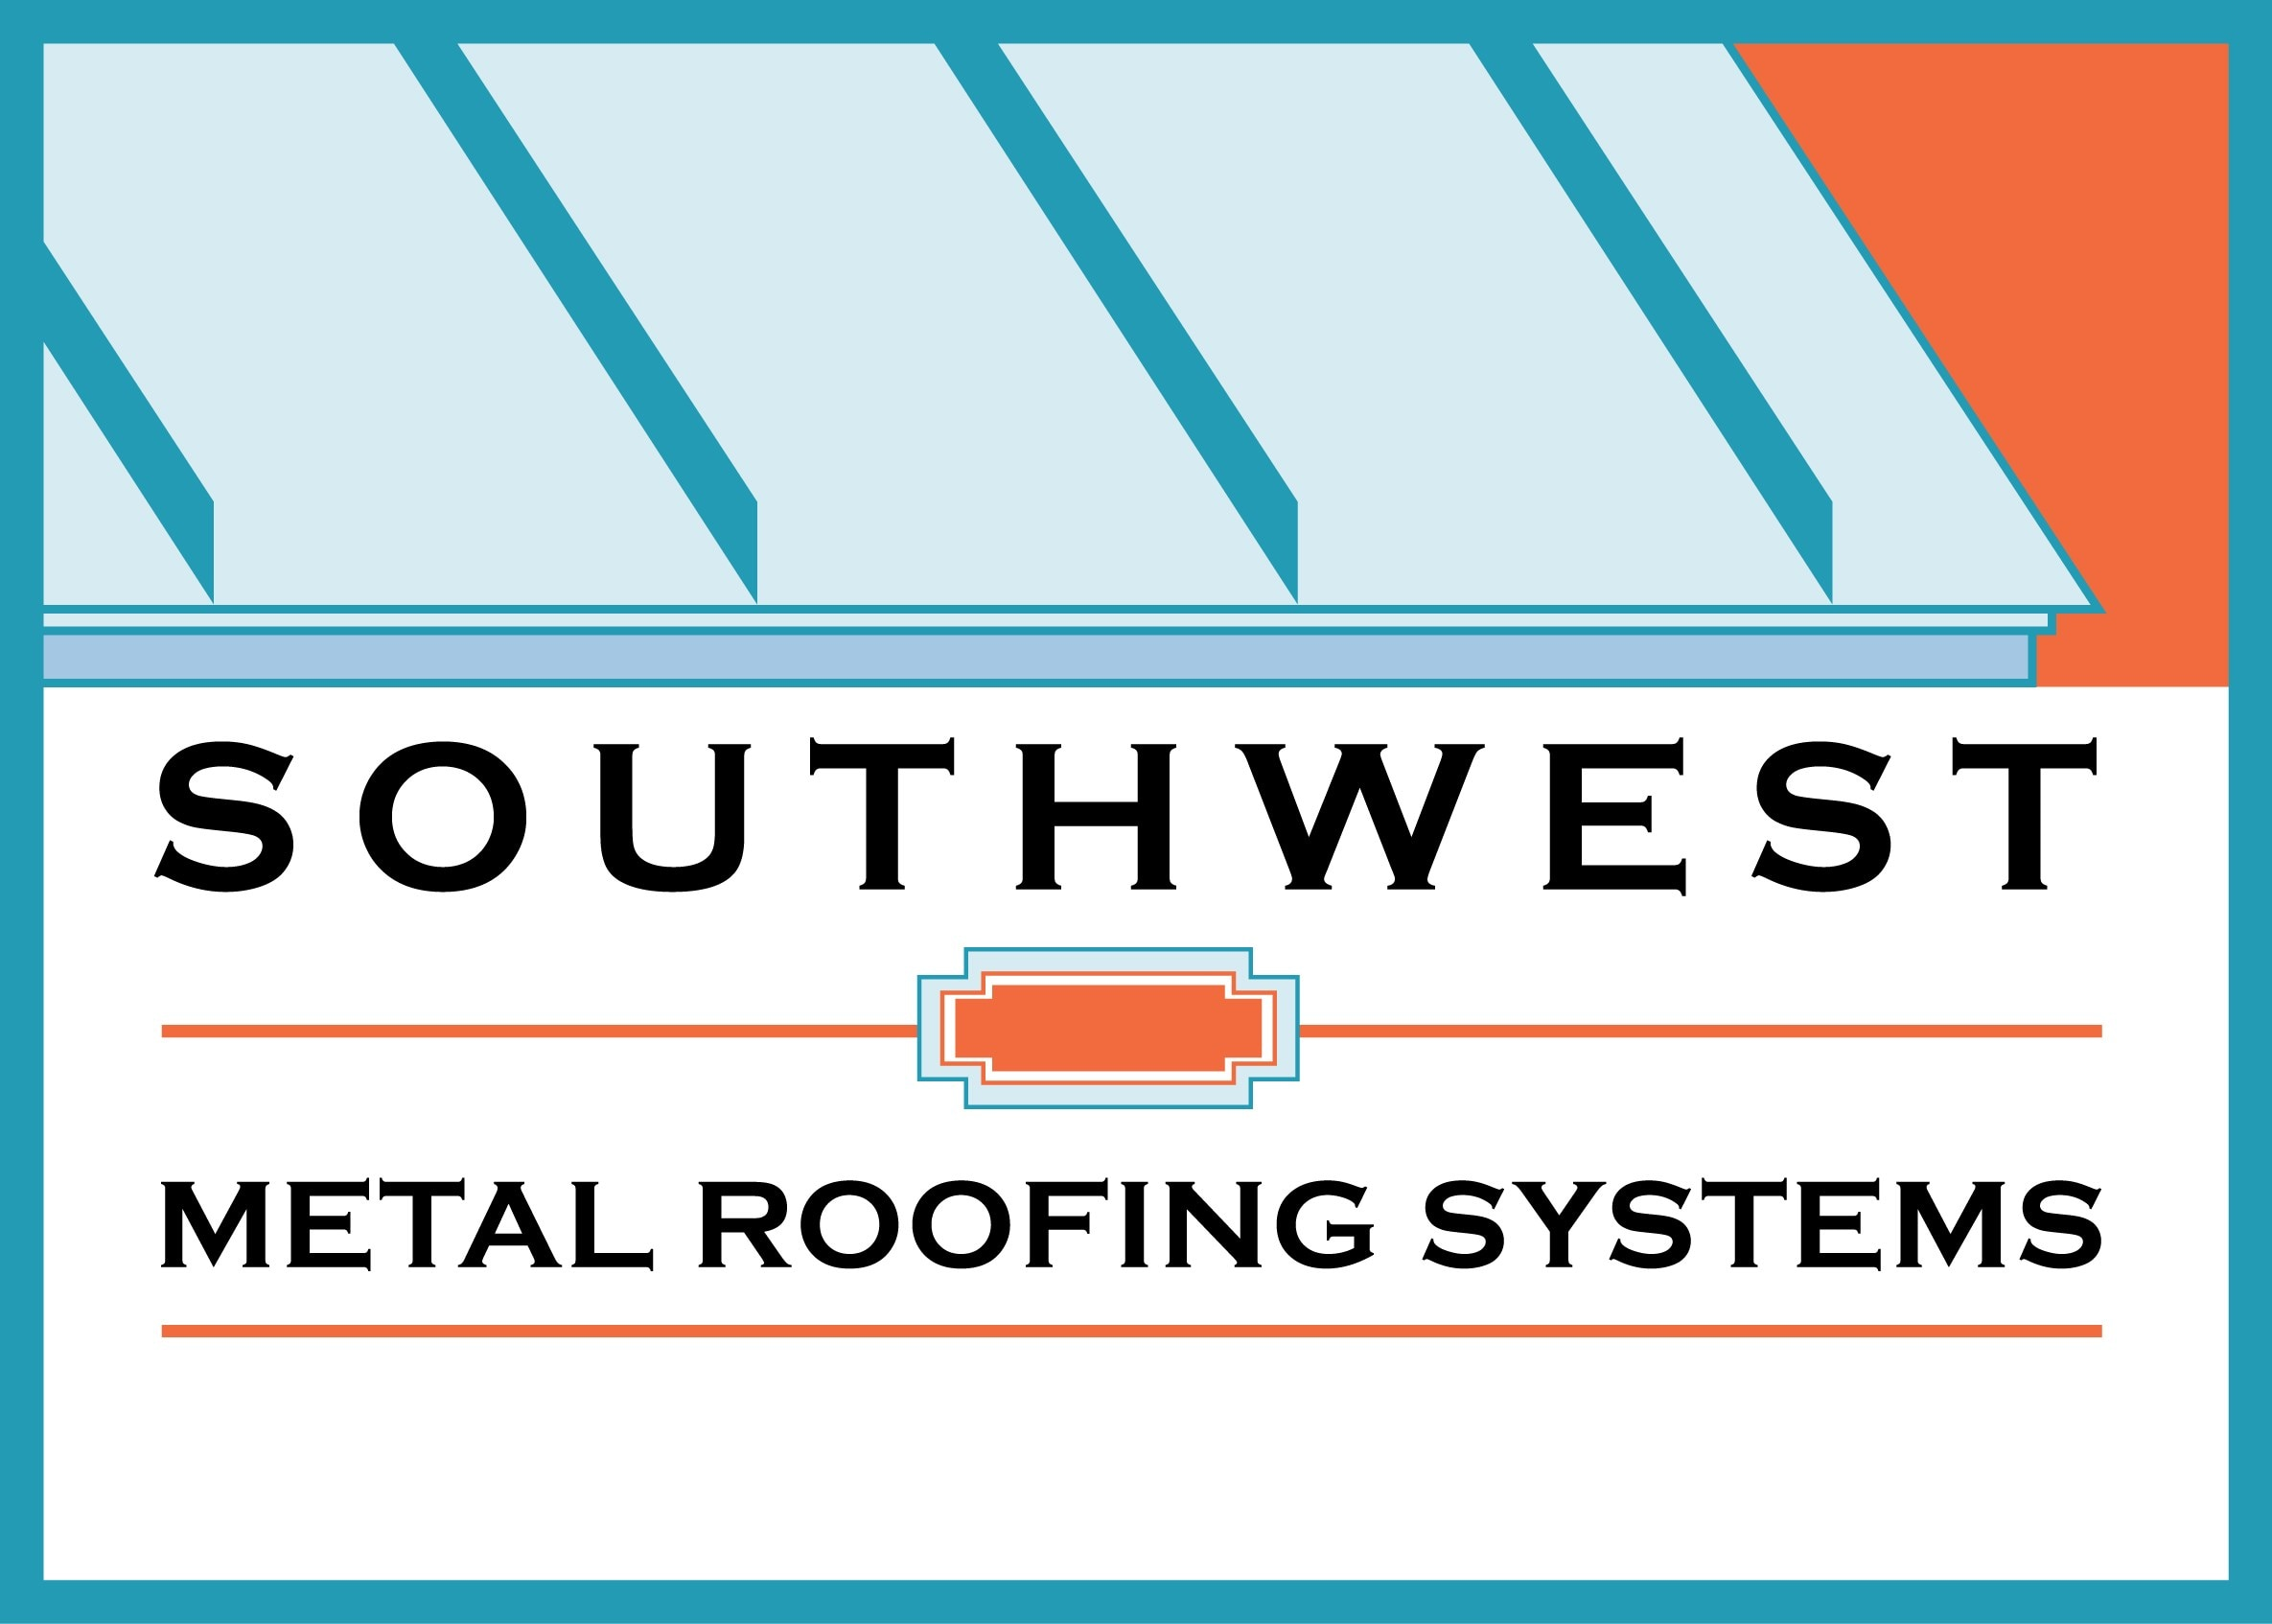 Southwest Metal Roofing Systems logo